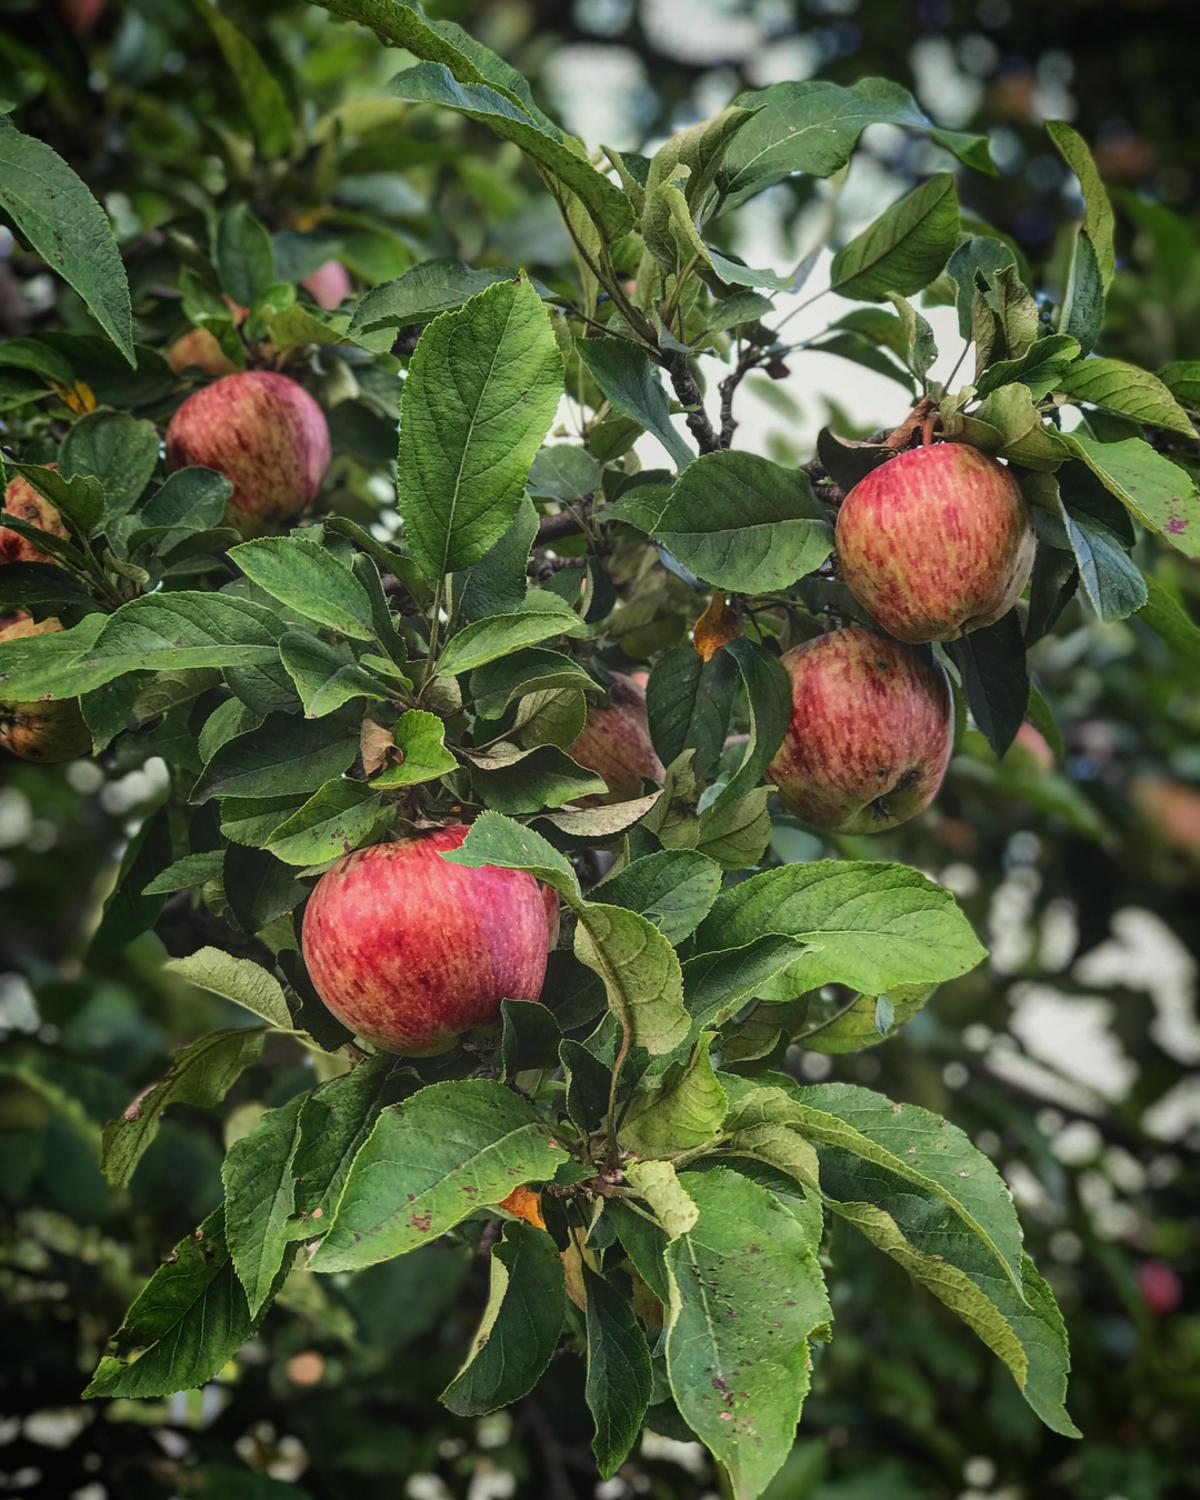 Close-up of apples on tree at Bayne's Apple Valley Farm in Freeland